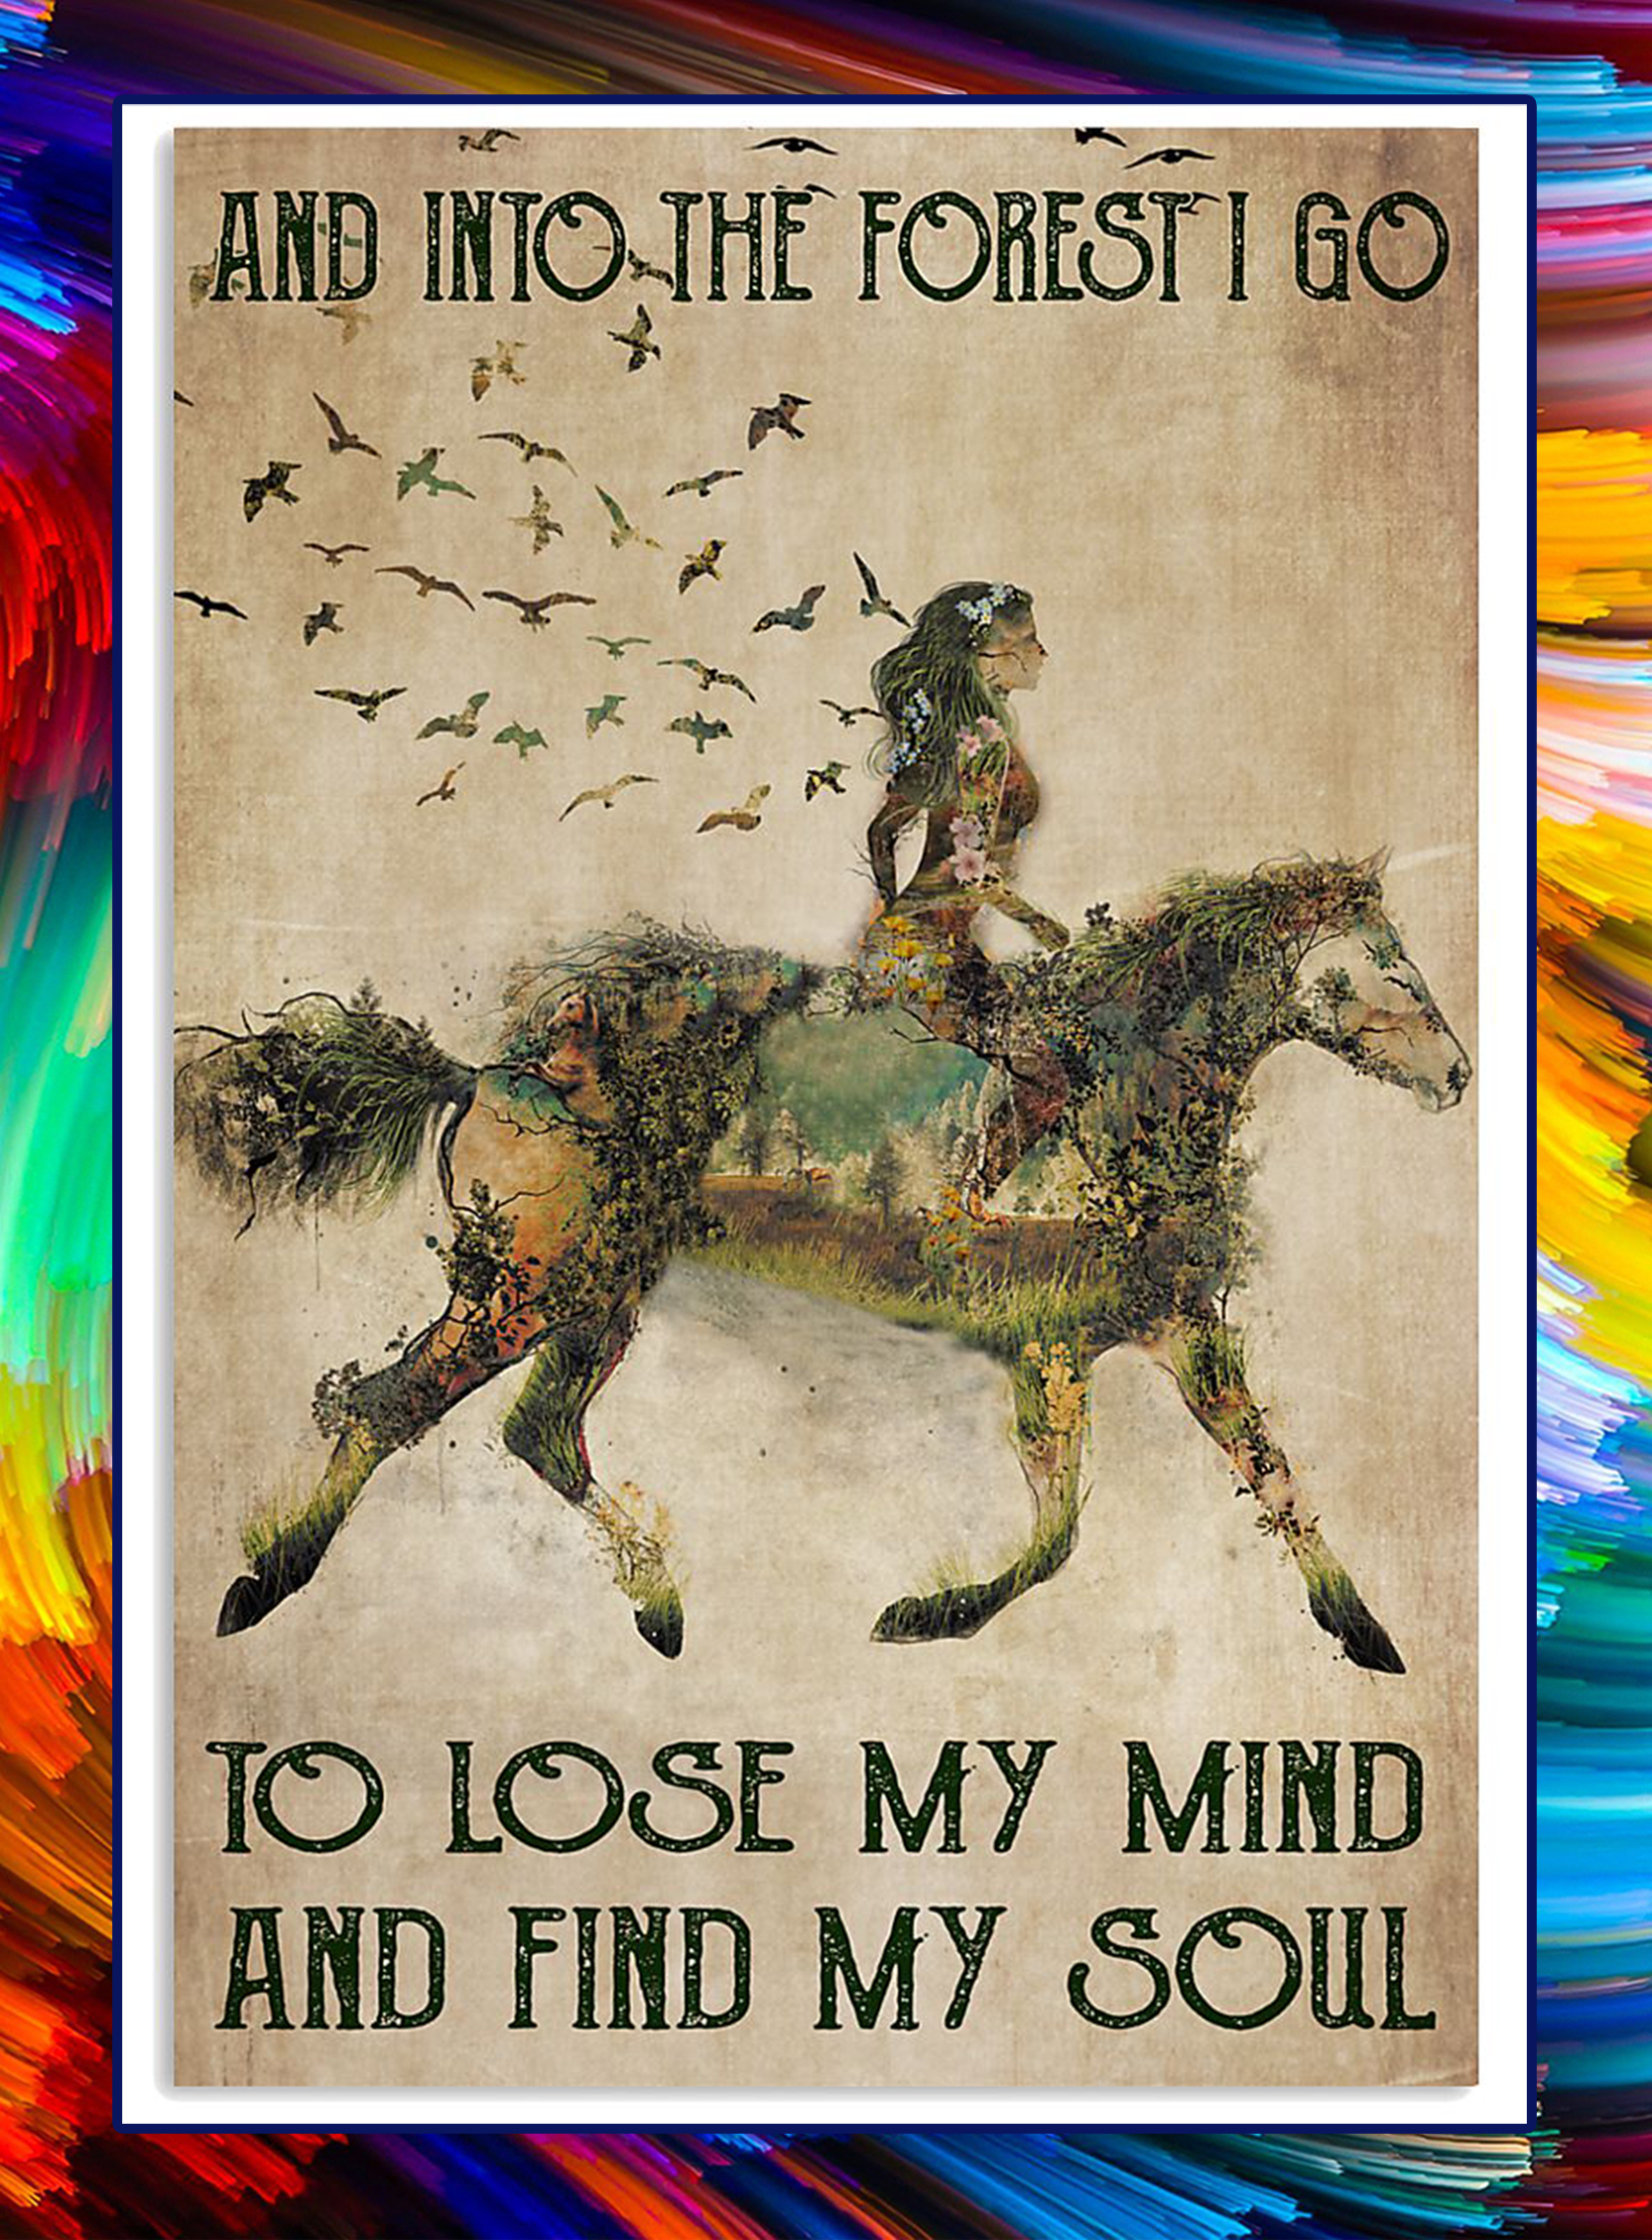 Horse And into forest i go to lose my mind and find my soul poster - A2